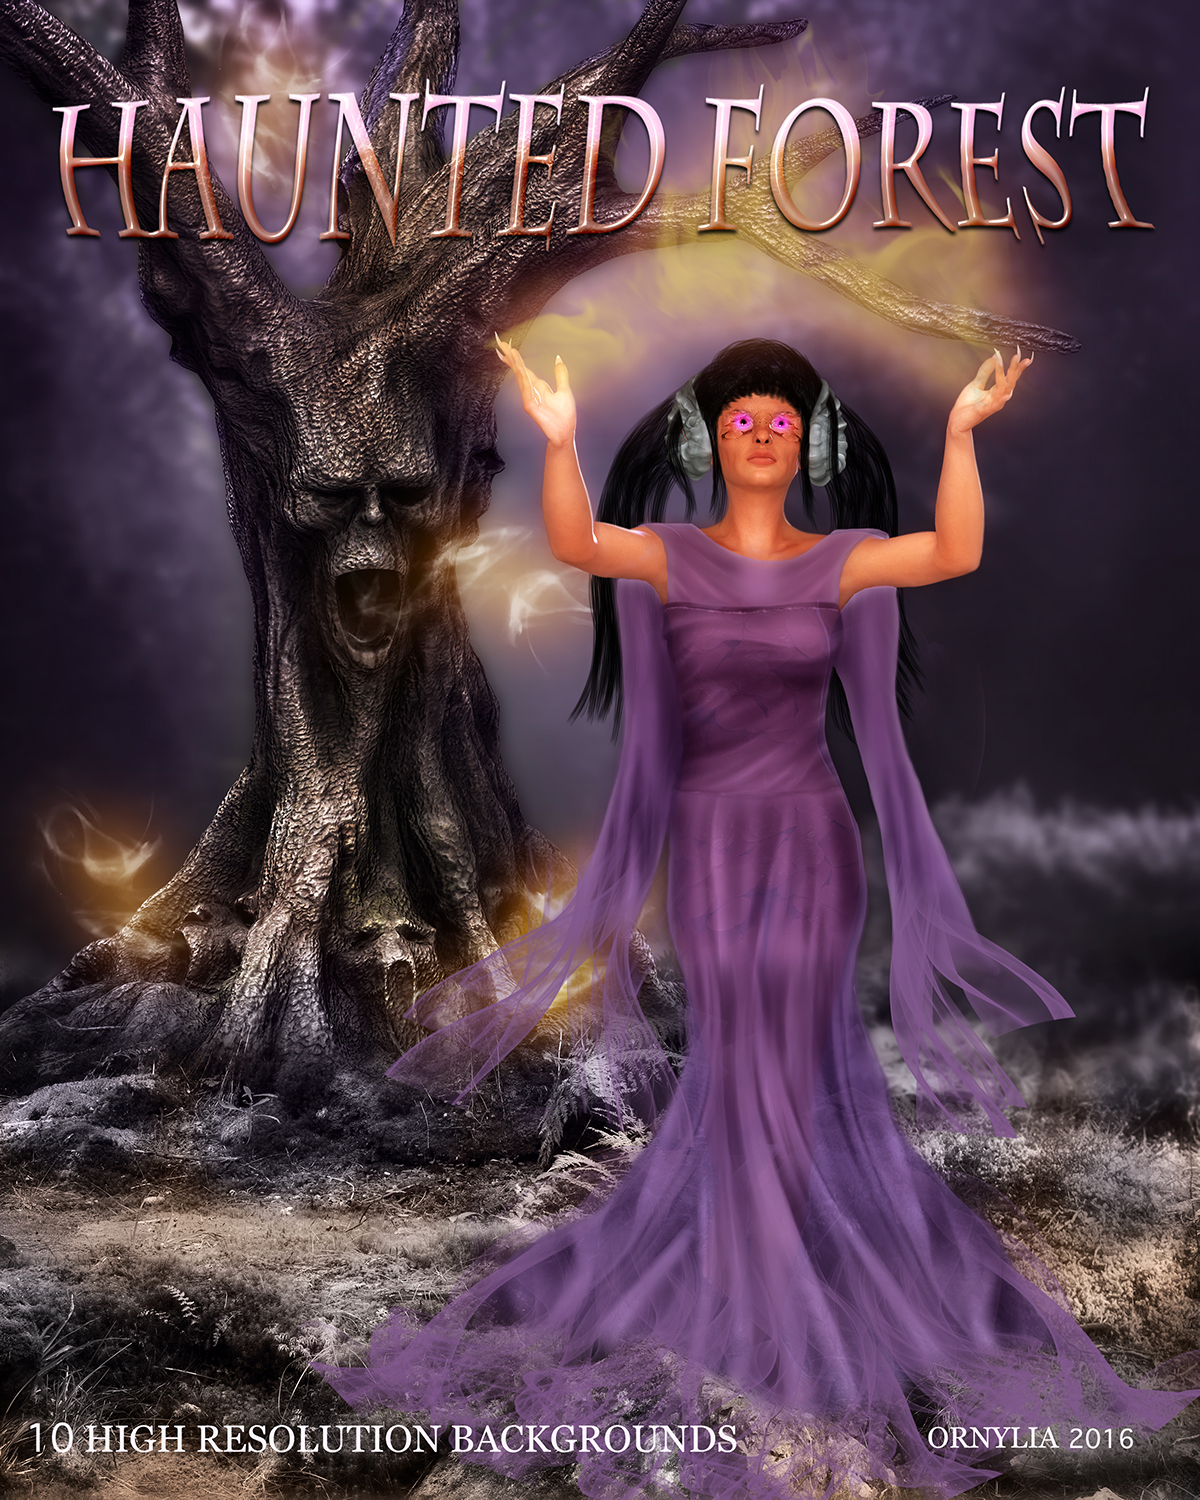 Haunted forest by ornylia